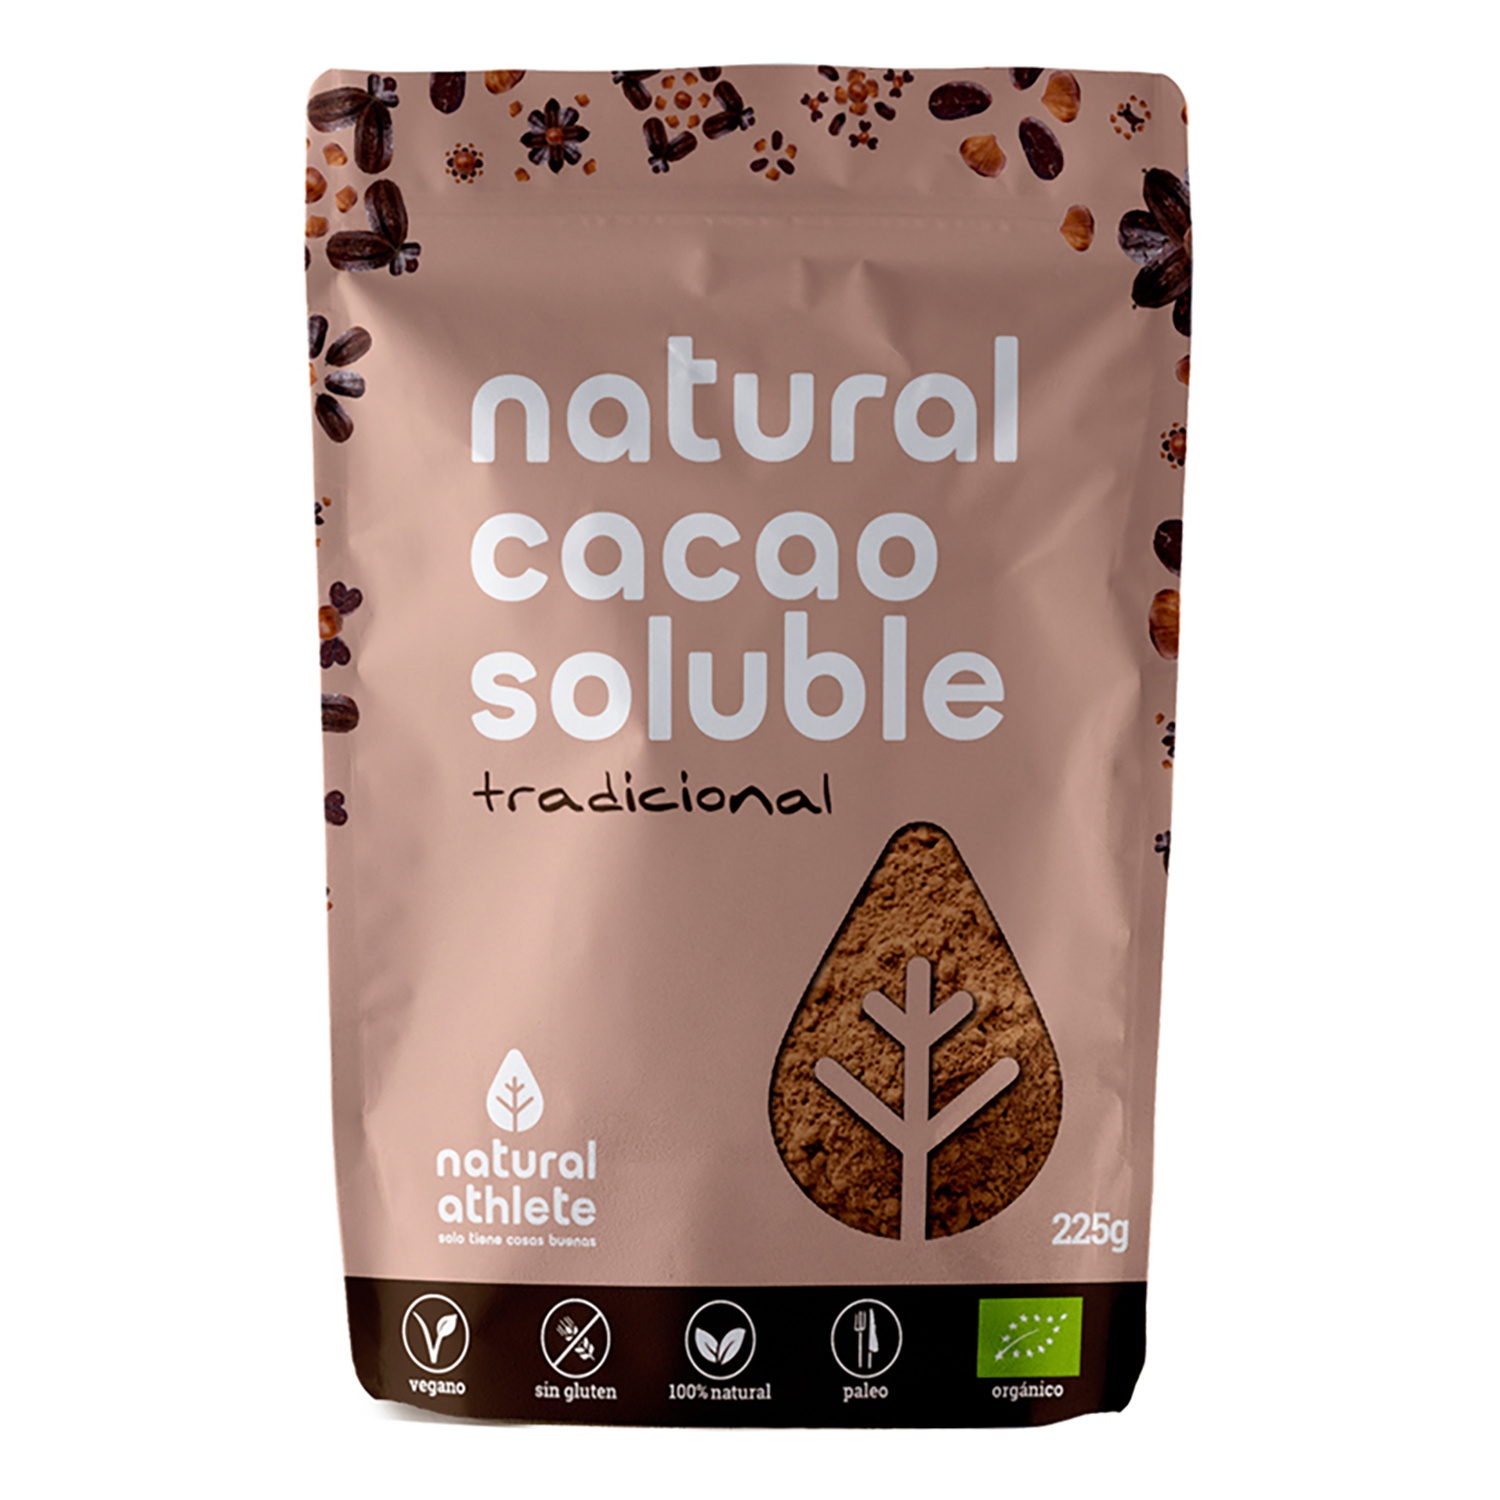 Cacao soluble natural ecológico Natural Athlete sin gluten 225 g.